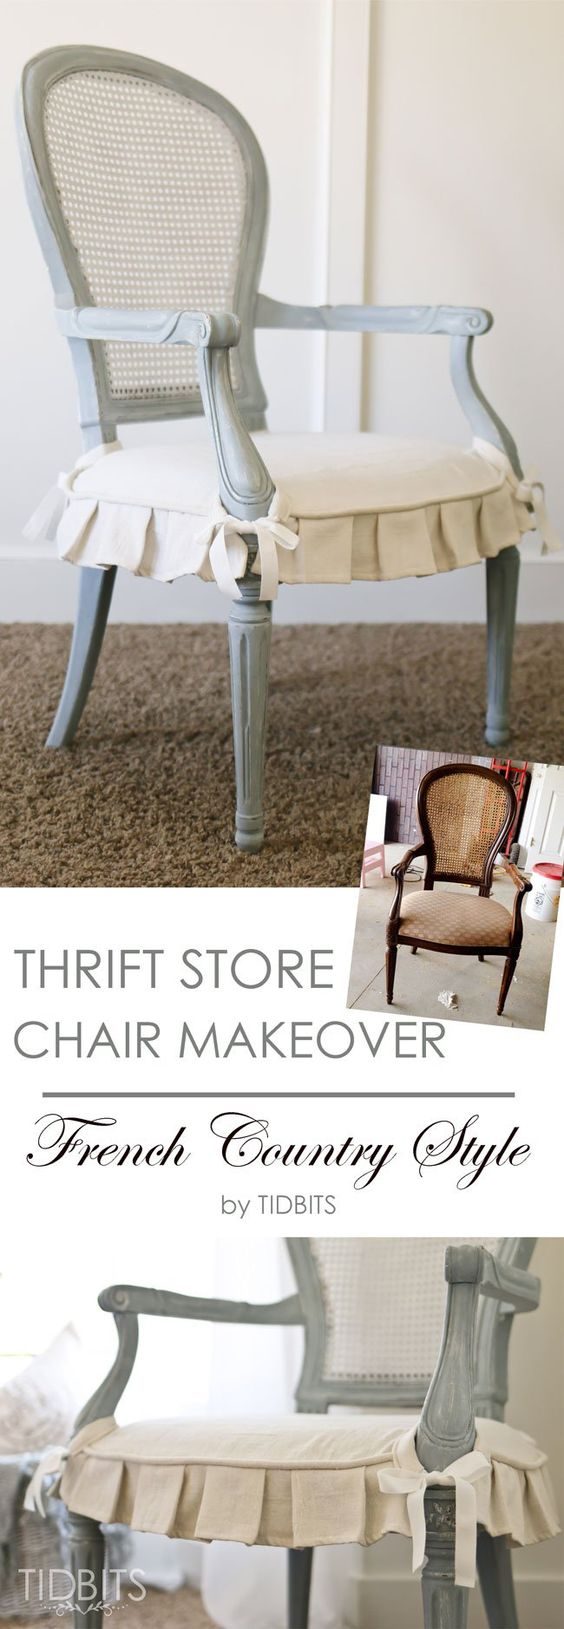 thrift store chair makeover editor style and rockers. Black Bedroom Furniture Sets. Home Design Ideas